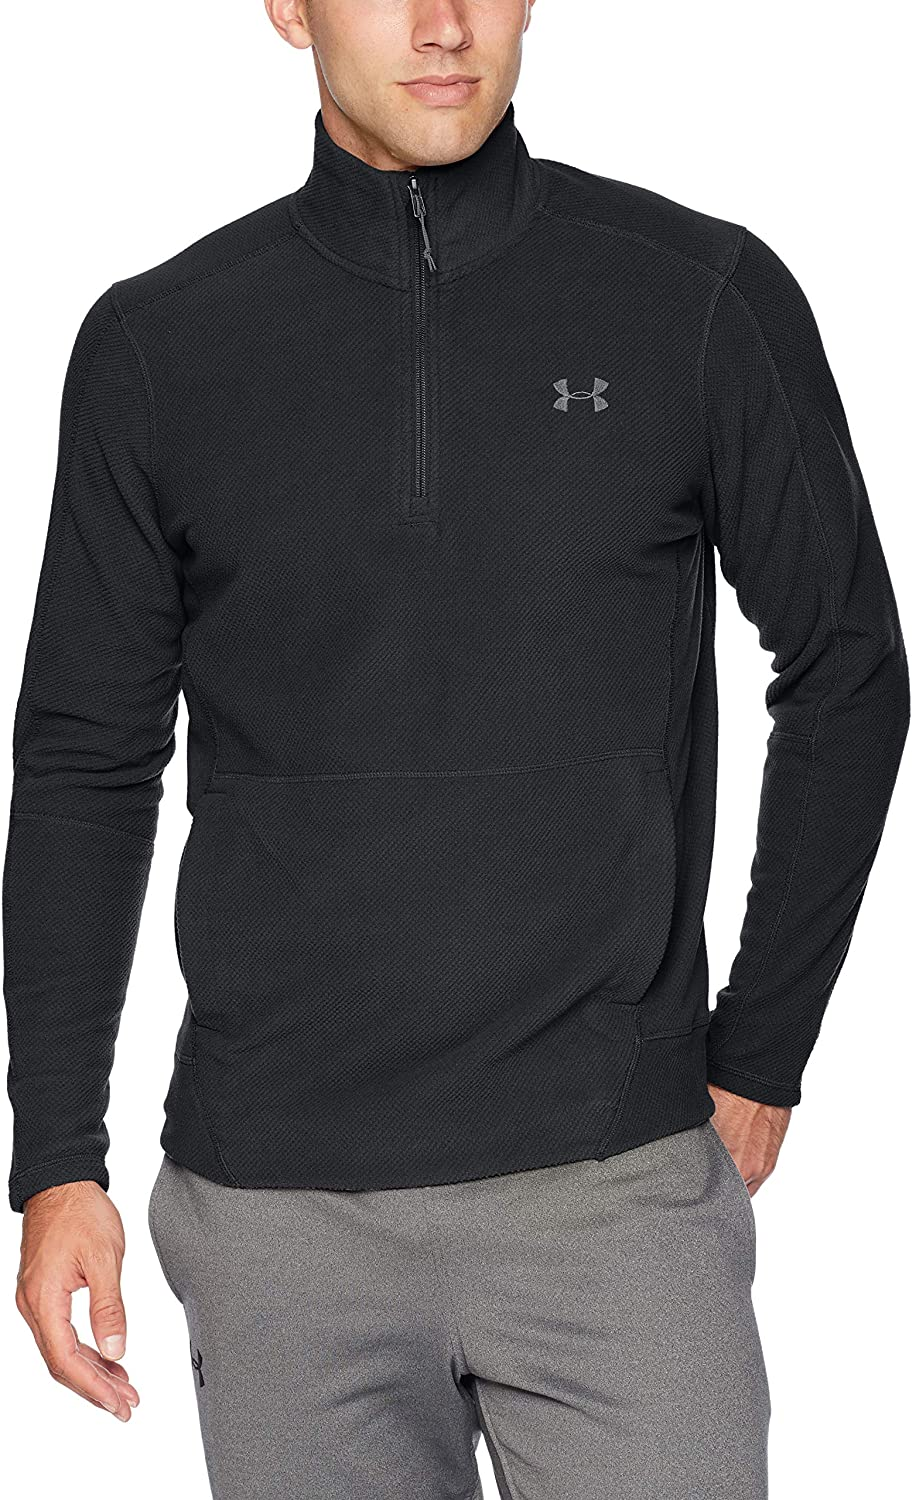 Under Armour Men's Zephyr Fleece Solid 1/4 Zip Sweat Shirt, Black (001)/Graphite, Medium